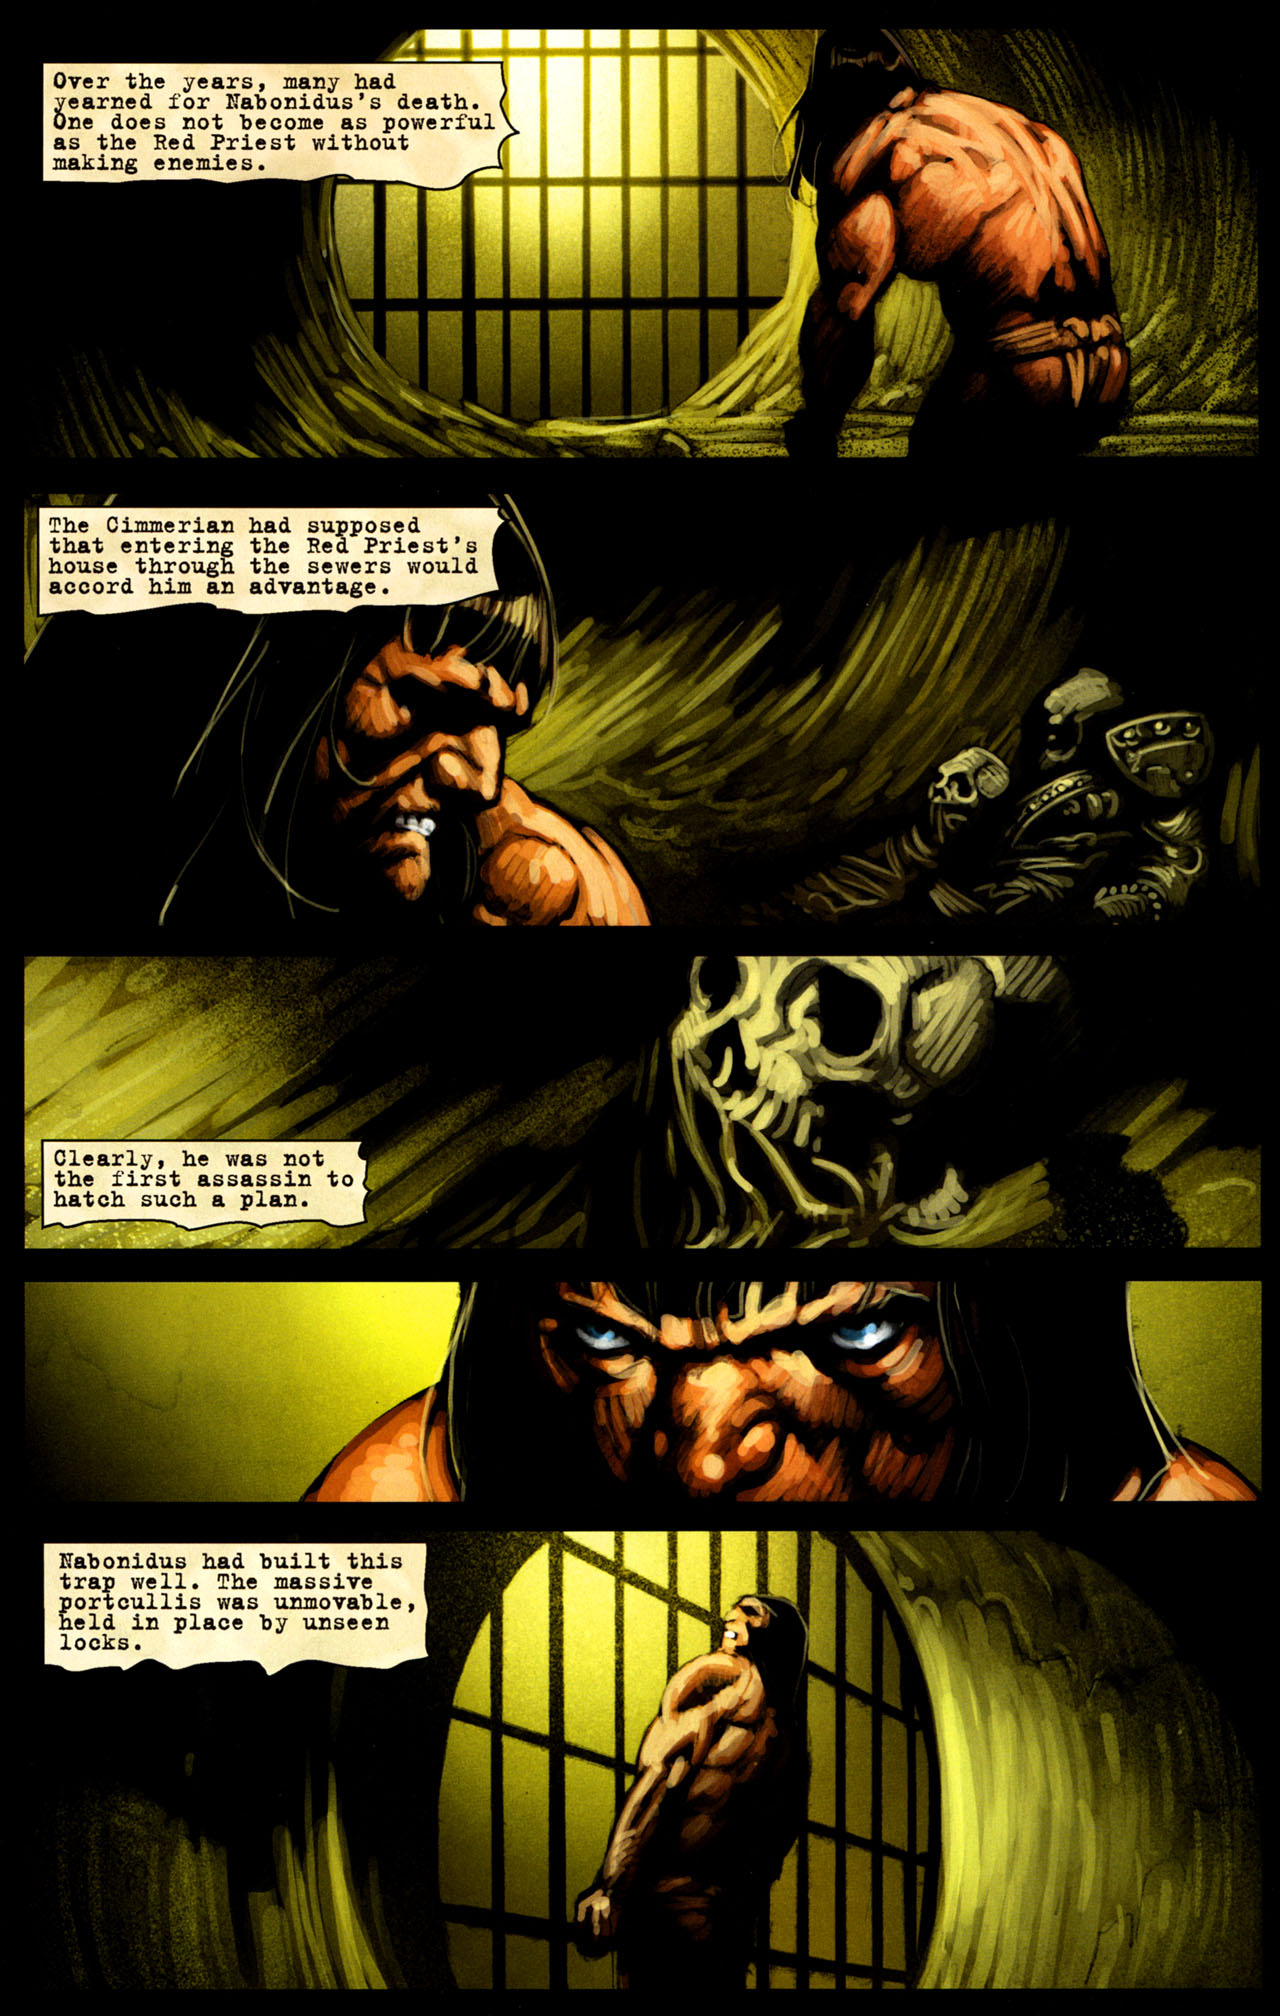 Conan 2003 Issue 42 | Viewcomic reading comics online for